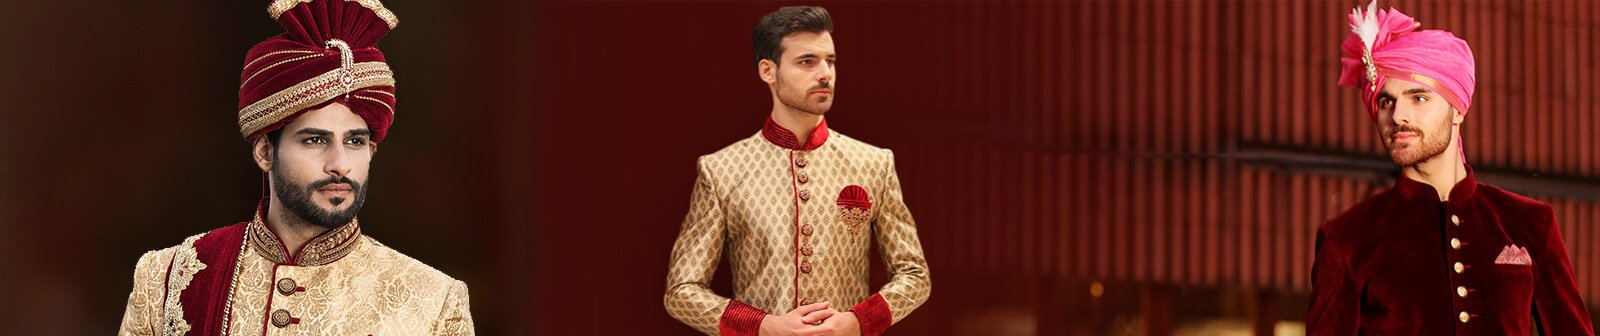 Groom Wear Shops in Jaipur